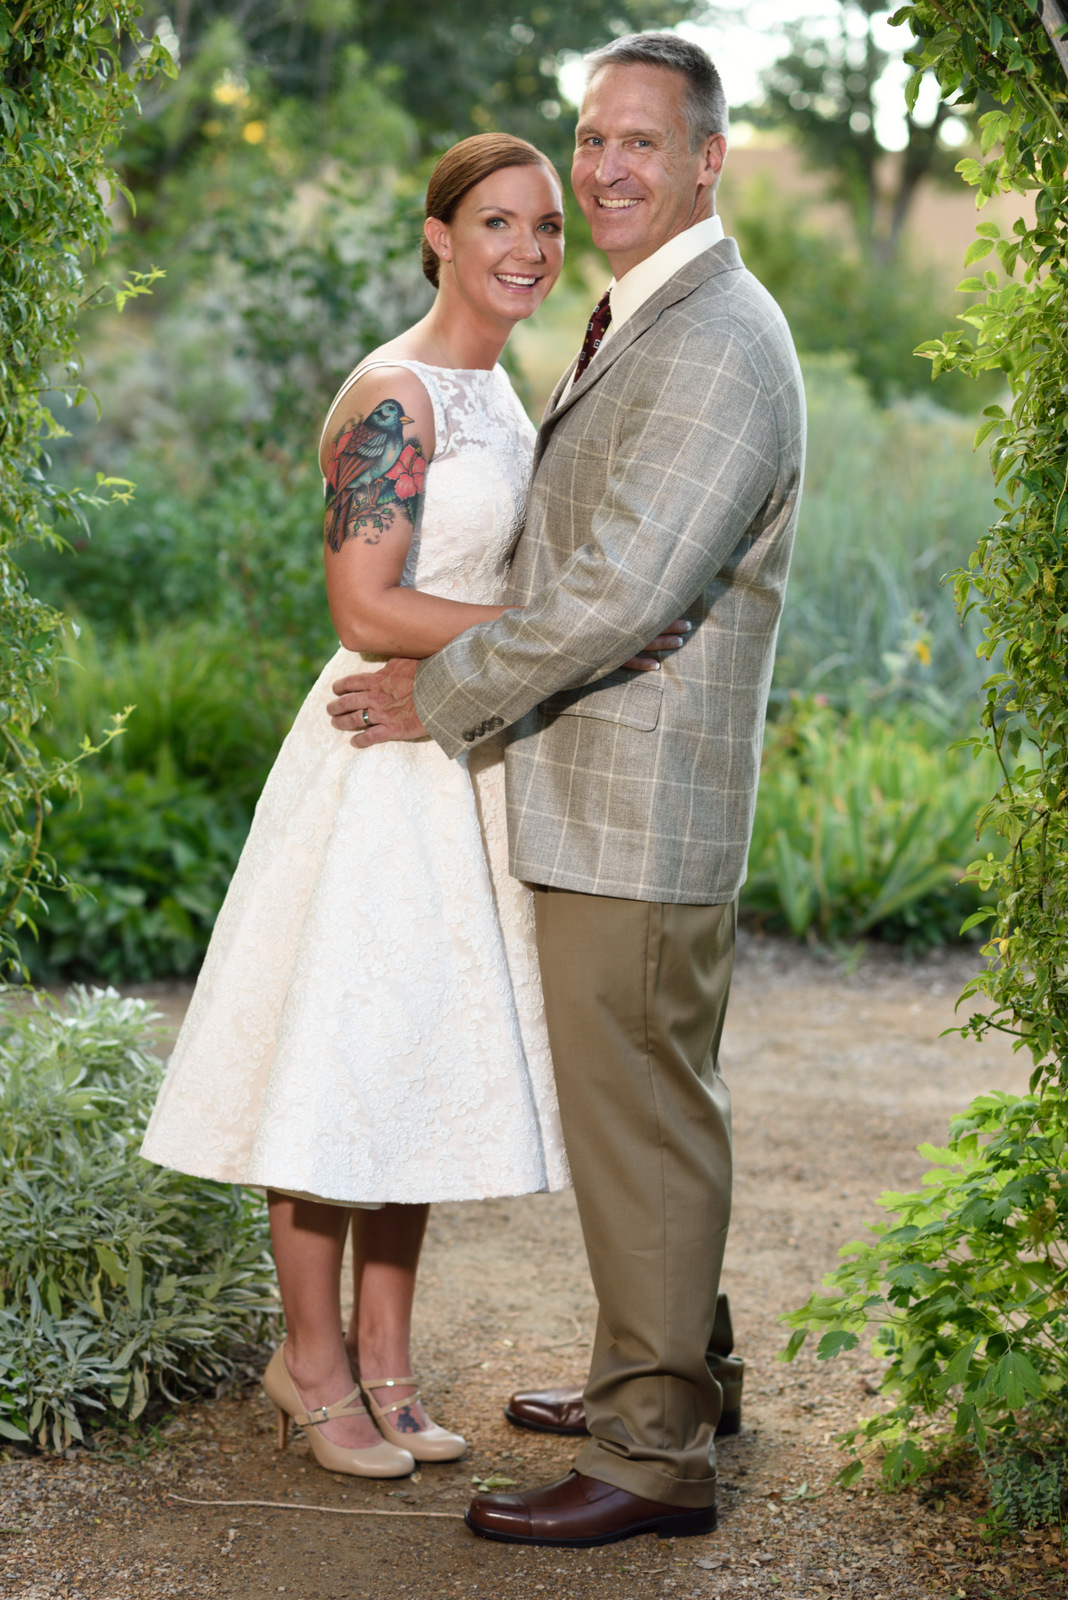 Nikon D810 For Wedding Photography: Spencer Photography